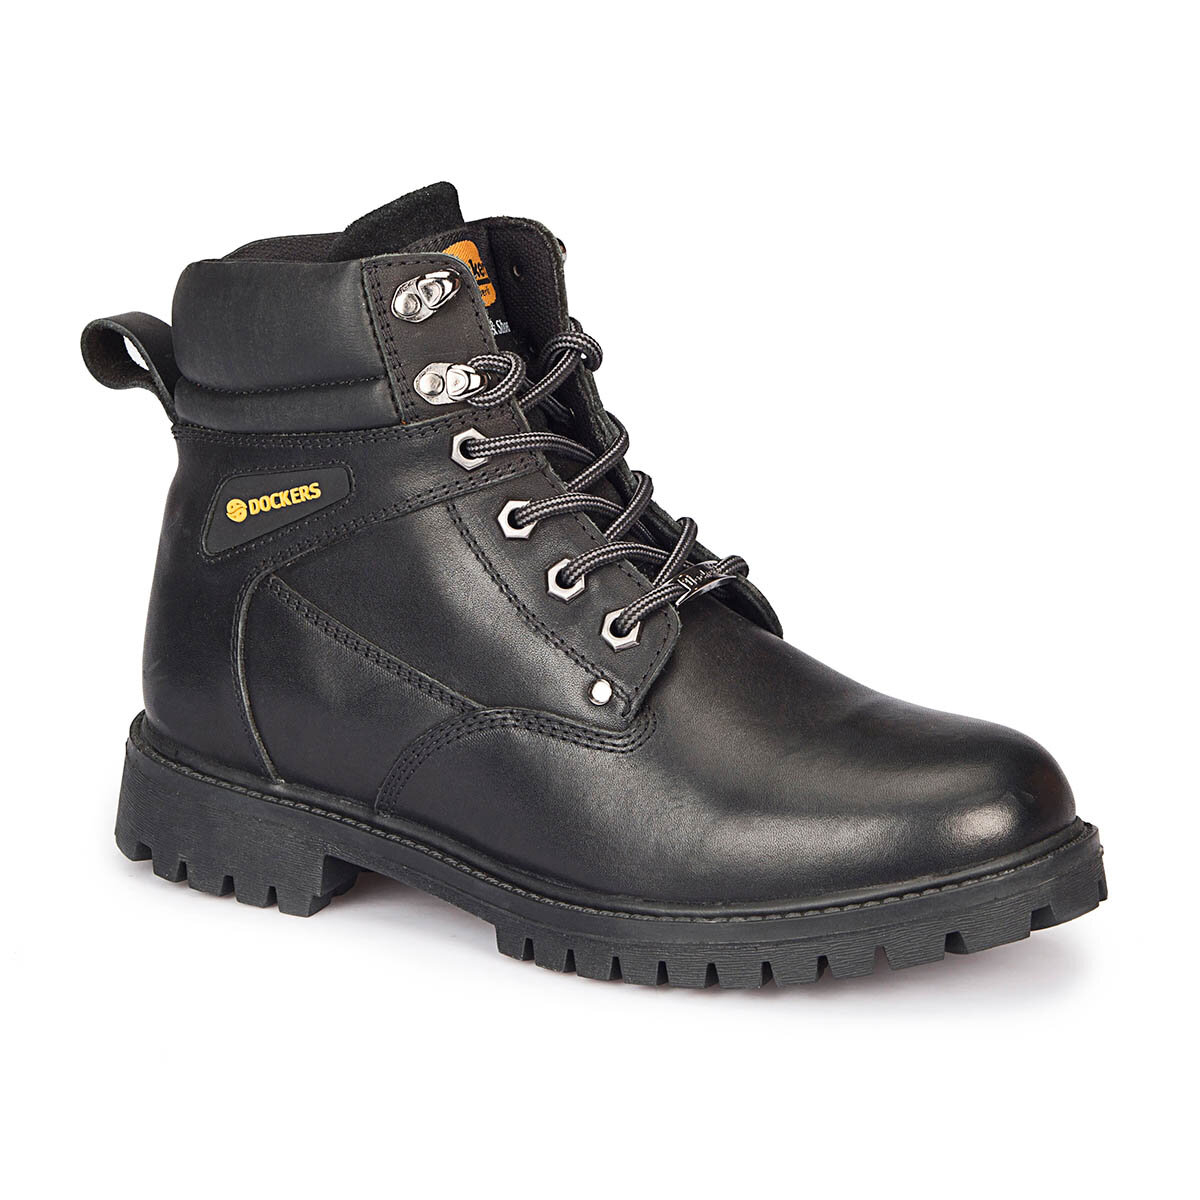 FLO 219192 Black Men Boots By Dockers The Gerle